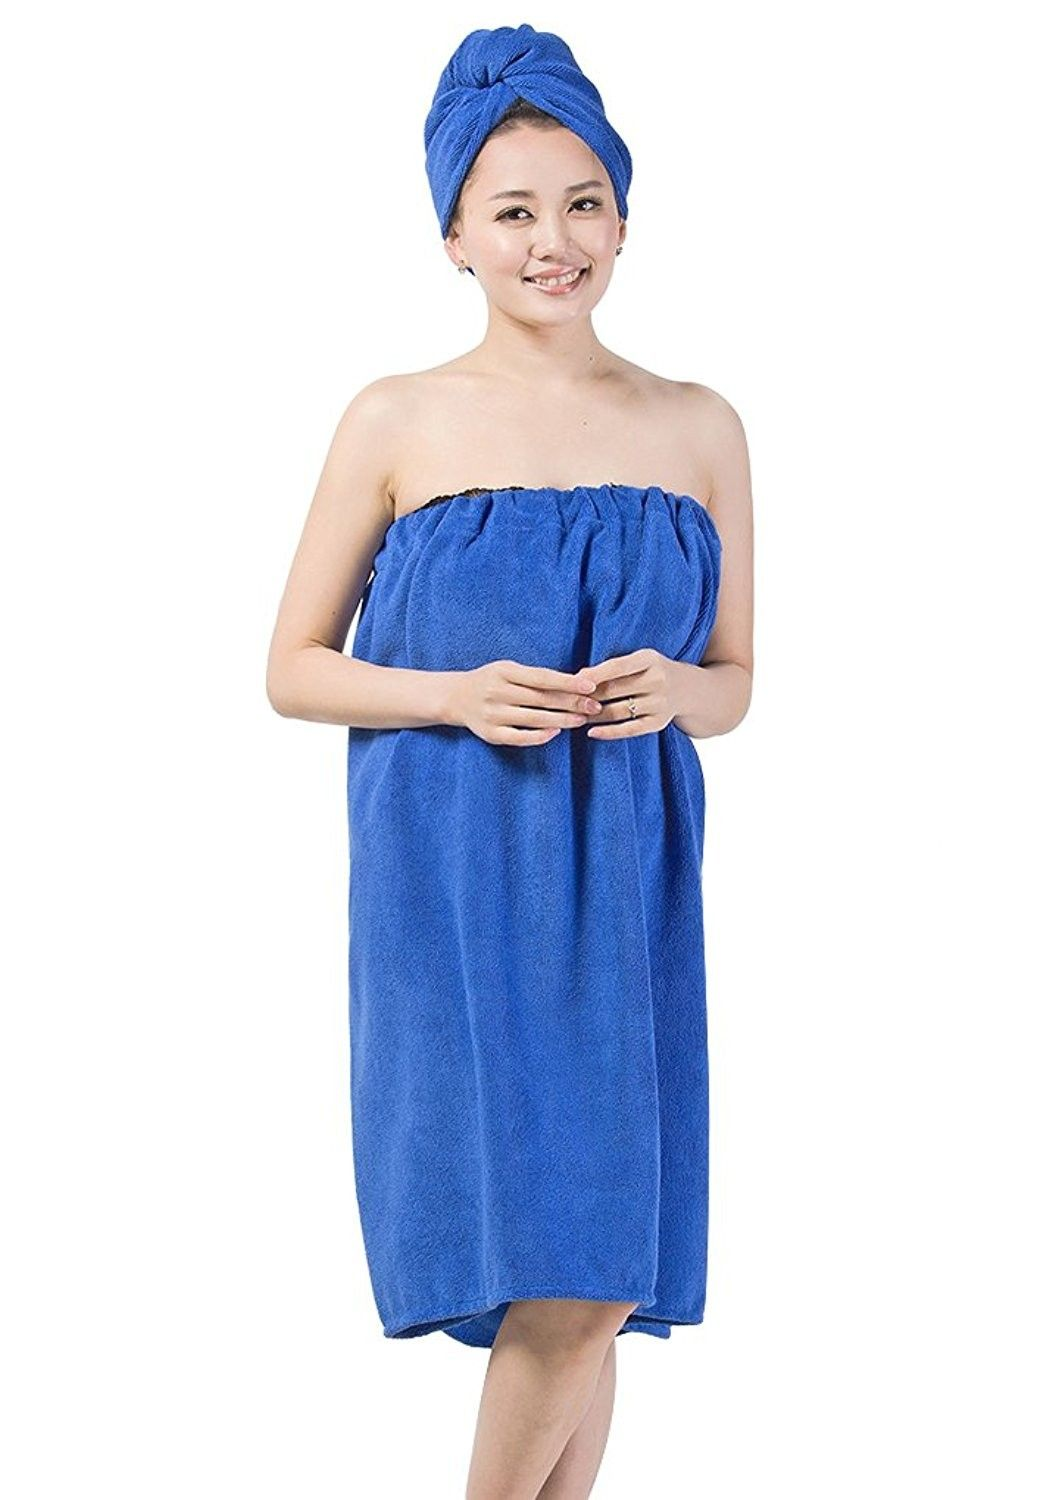 ab9ee558c6 Women s Spa Wrap Set Cozy Terry Cloth Bath Towel Cover-up Bathrobe with  Drying Hair Hat - Royal Blue - CI17Y0N7963